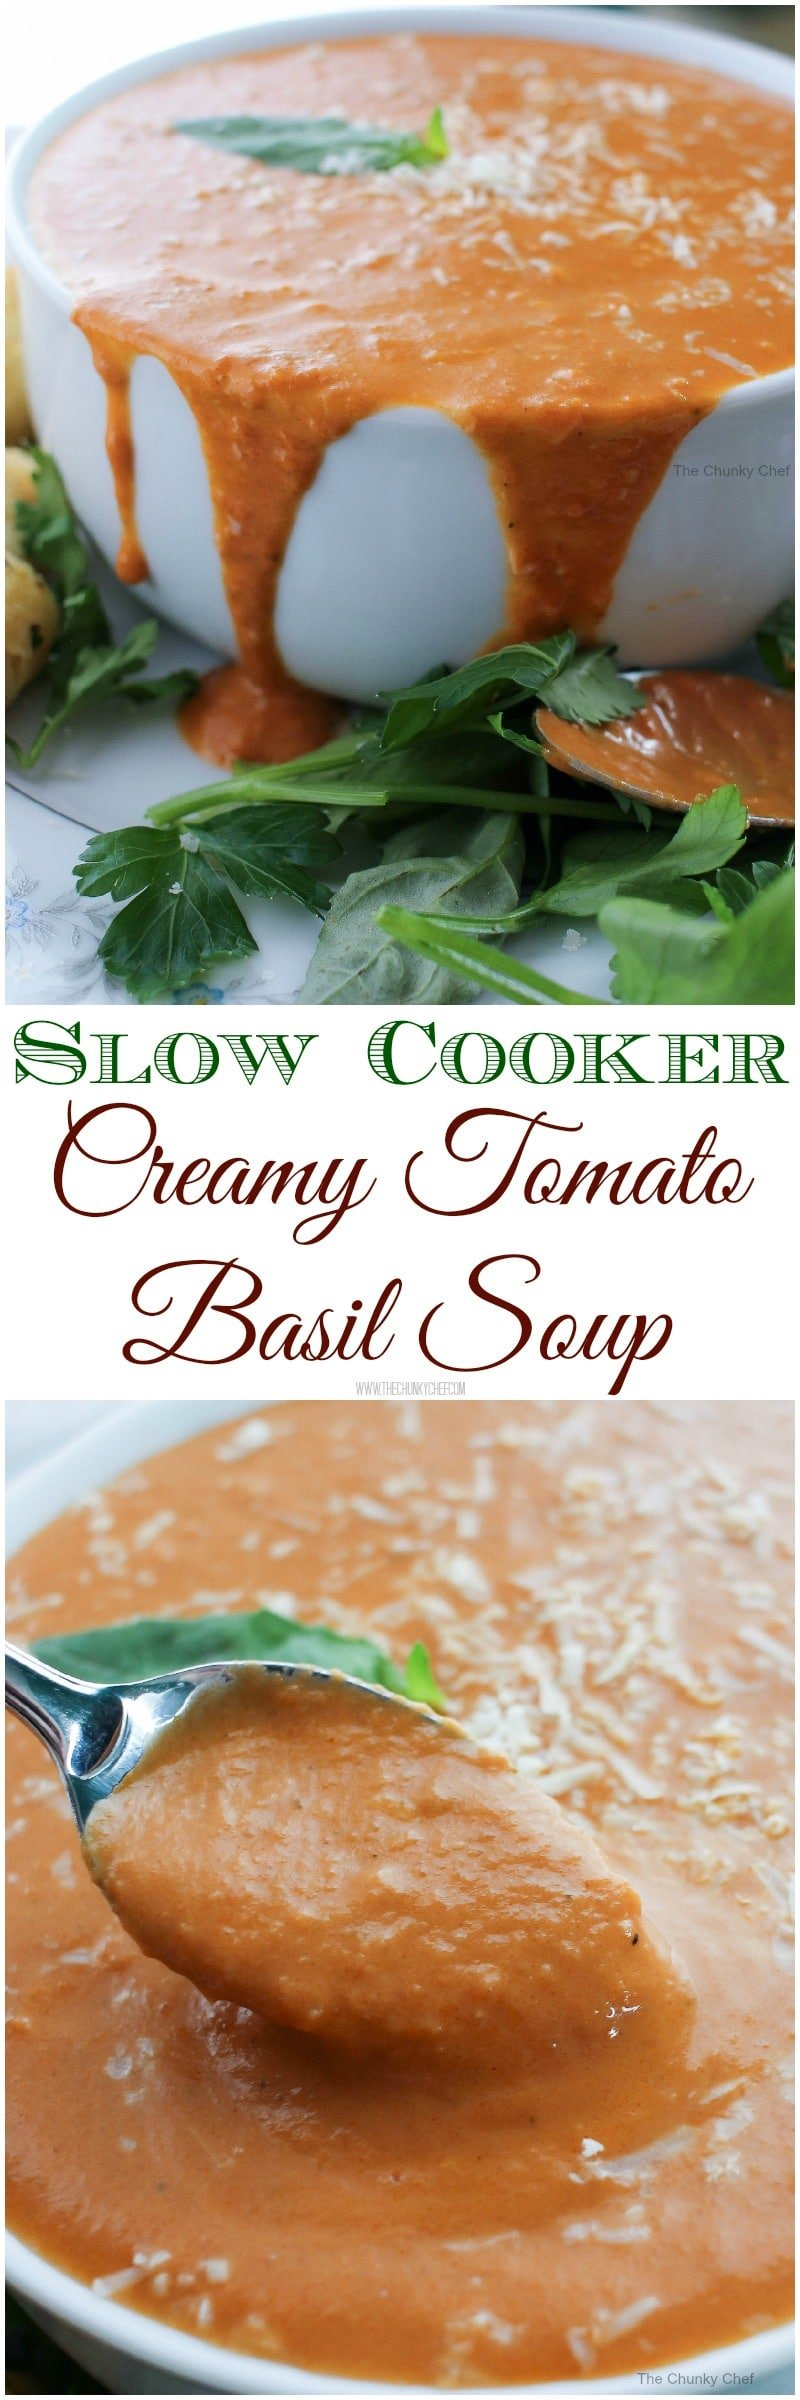 Slow Cooker Creamy Tomato Basil Soup - Lusciously creamy and full of tomato and basil flavors, this slow cooker tomato soup is out of this world! Try it tonight!